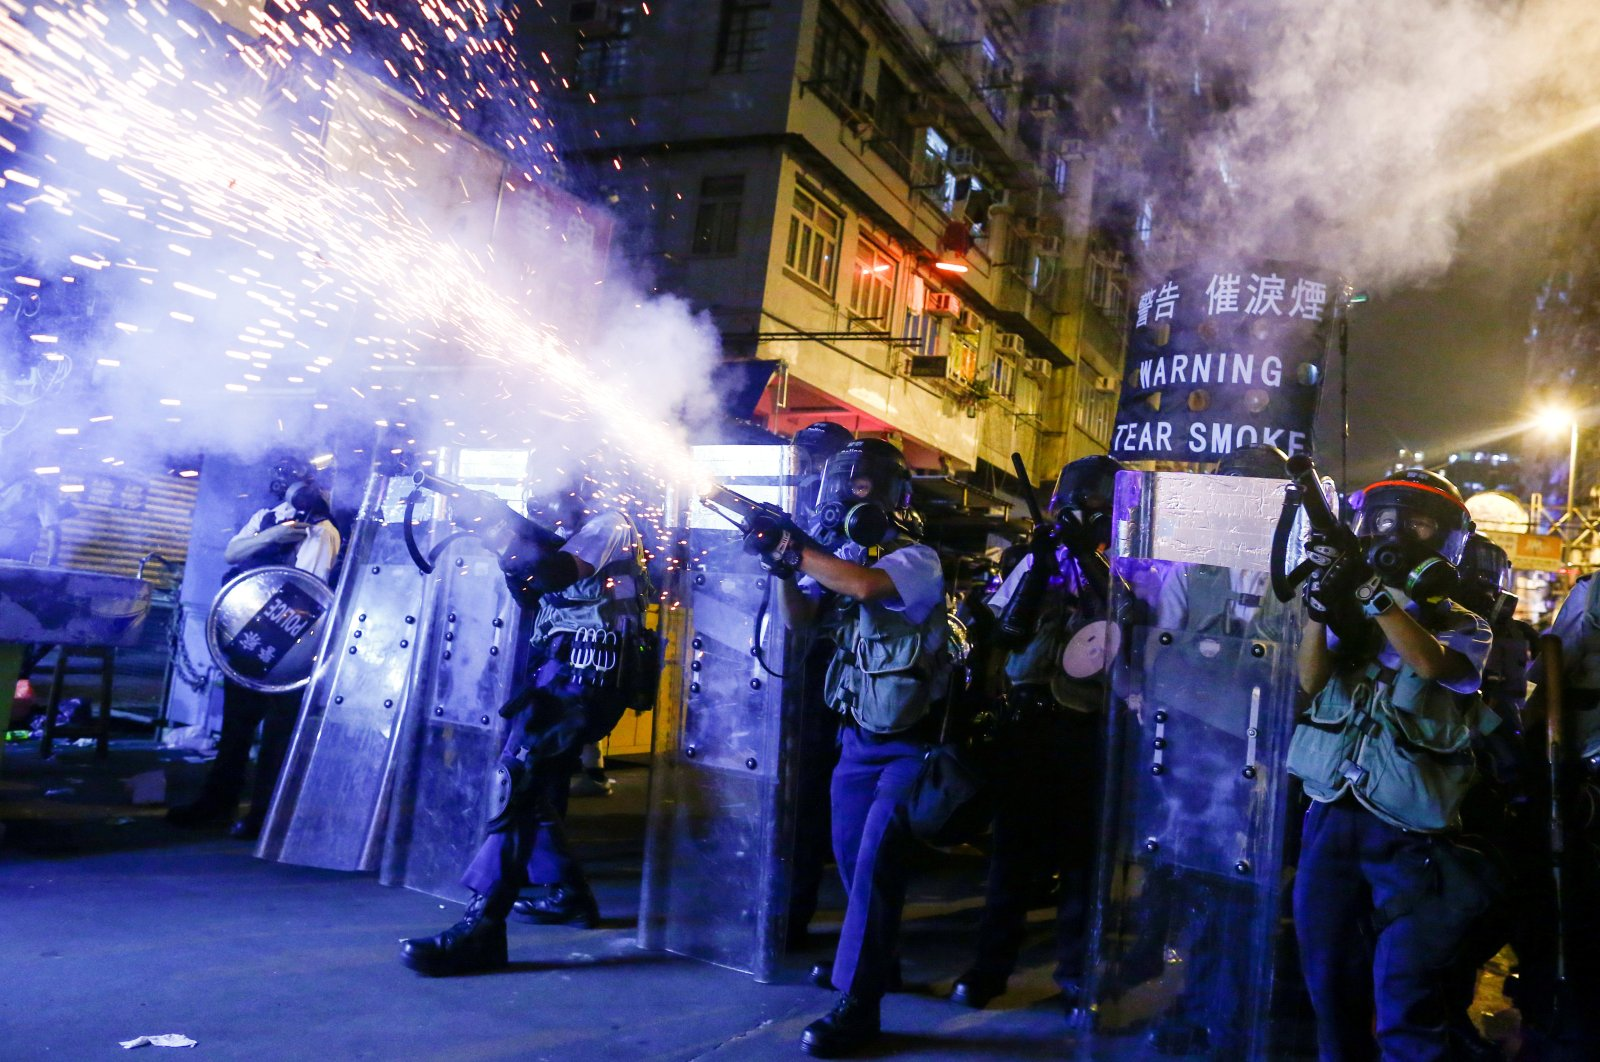 Police fire tear gas at anti-extradition bill protesters during clashes in Hong Kong, China, Aug. 14, 2019. (Reuters Photo)